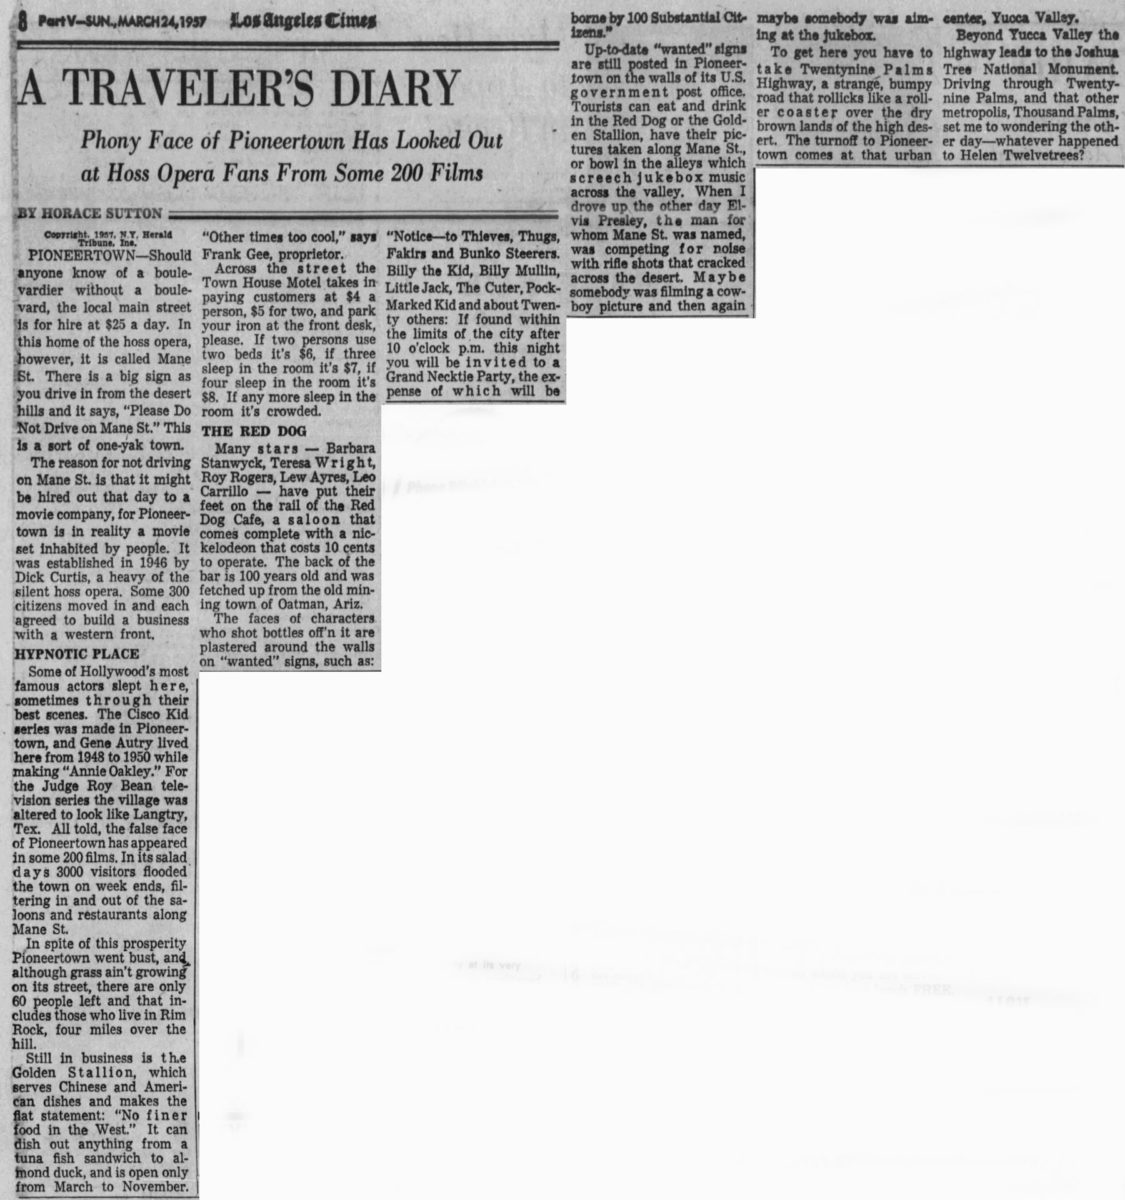 Mar. 24, 1957 Traveller's article clipping